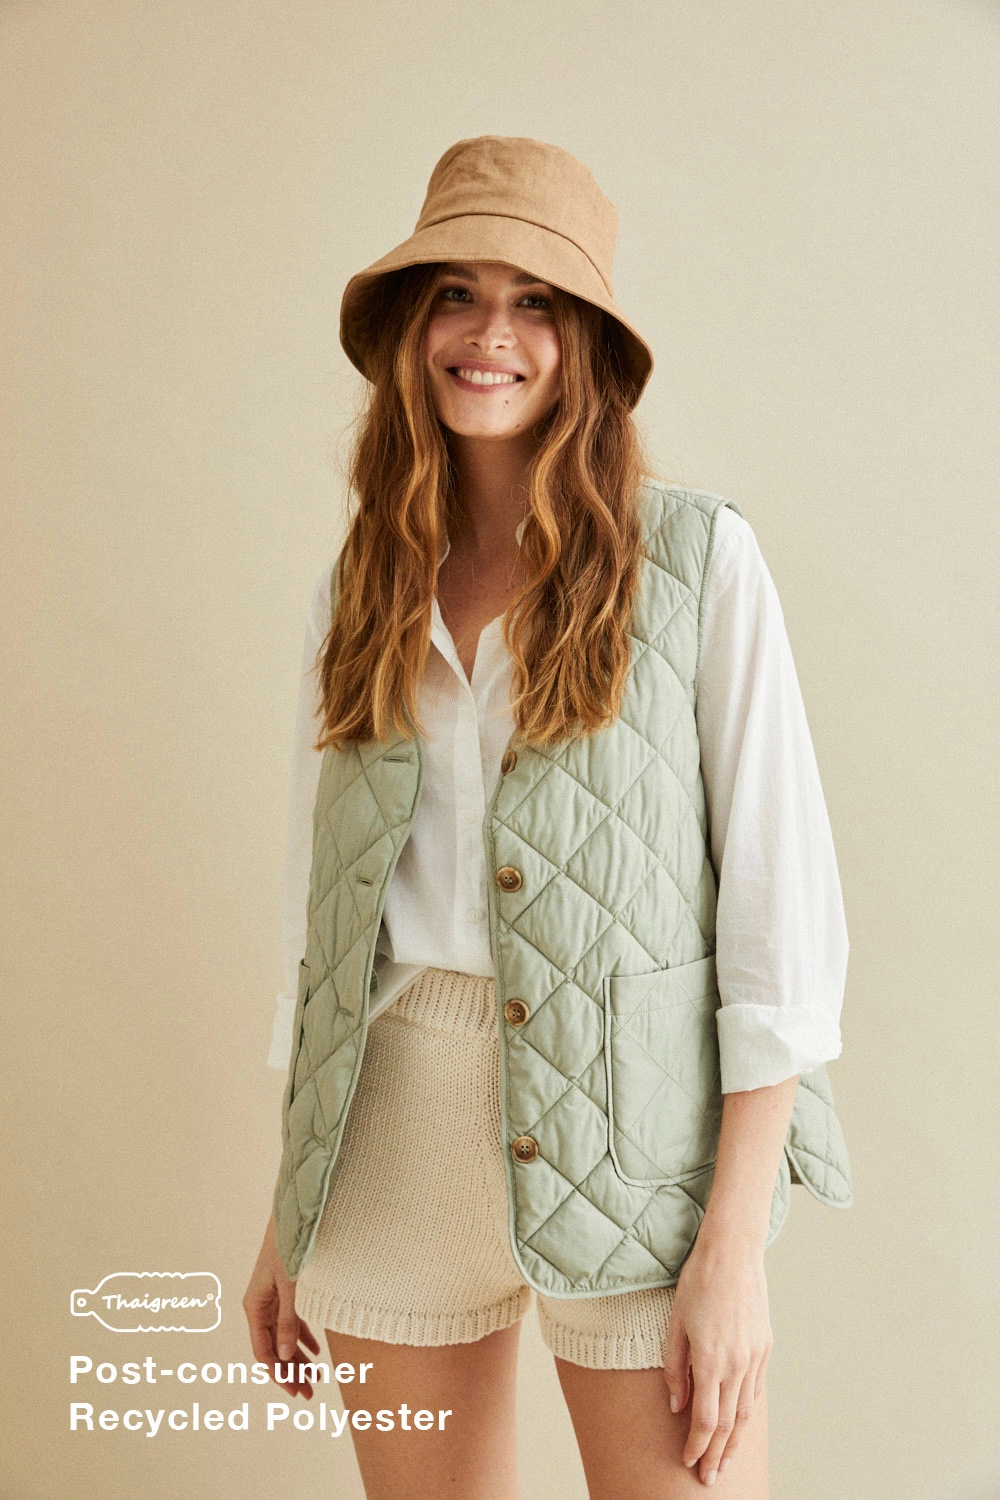 Eseoese Aberdeen Padded Vest